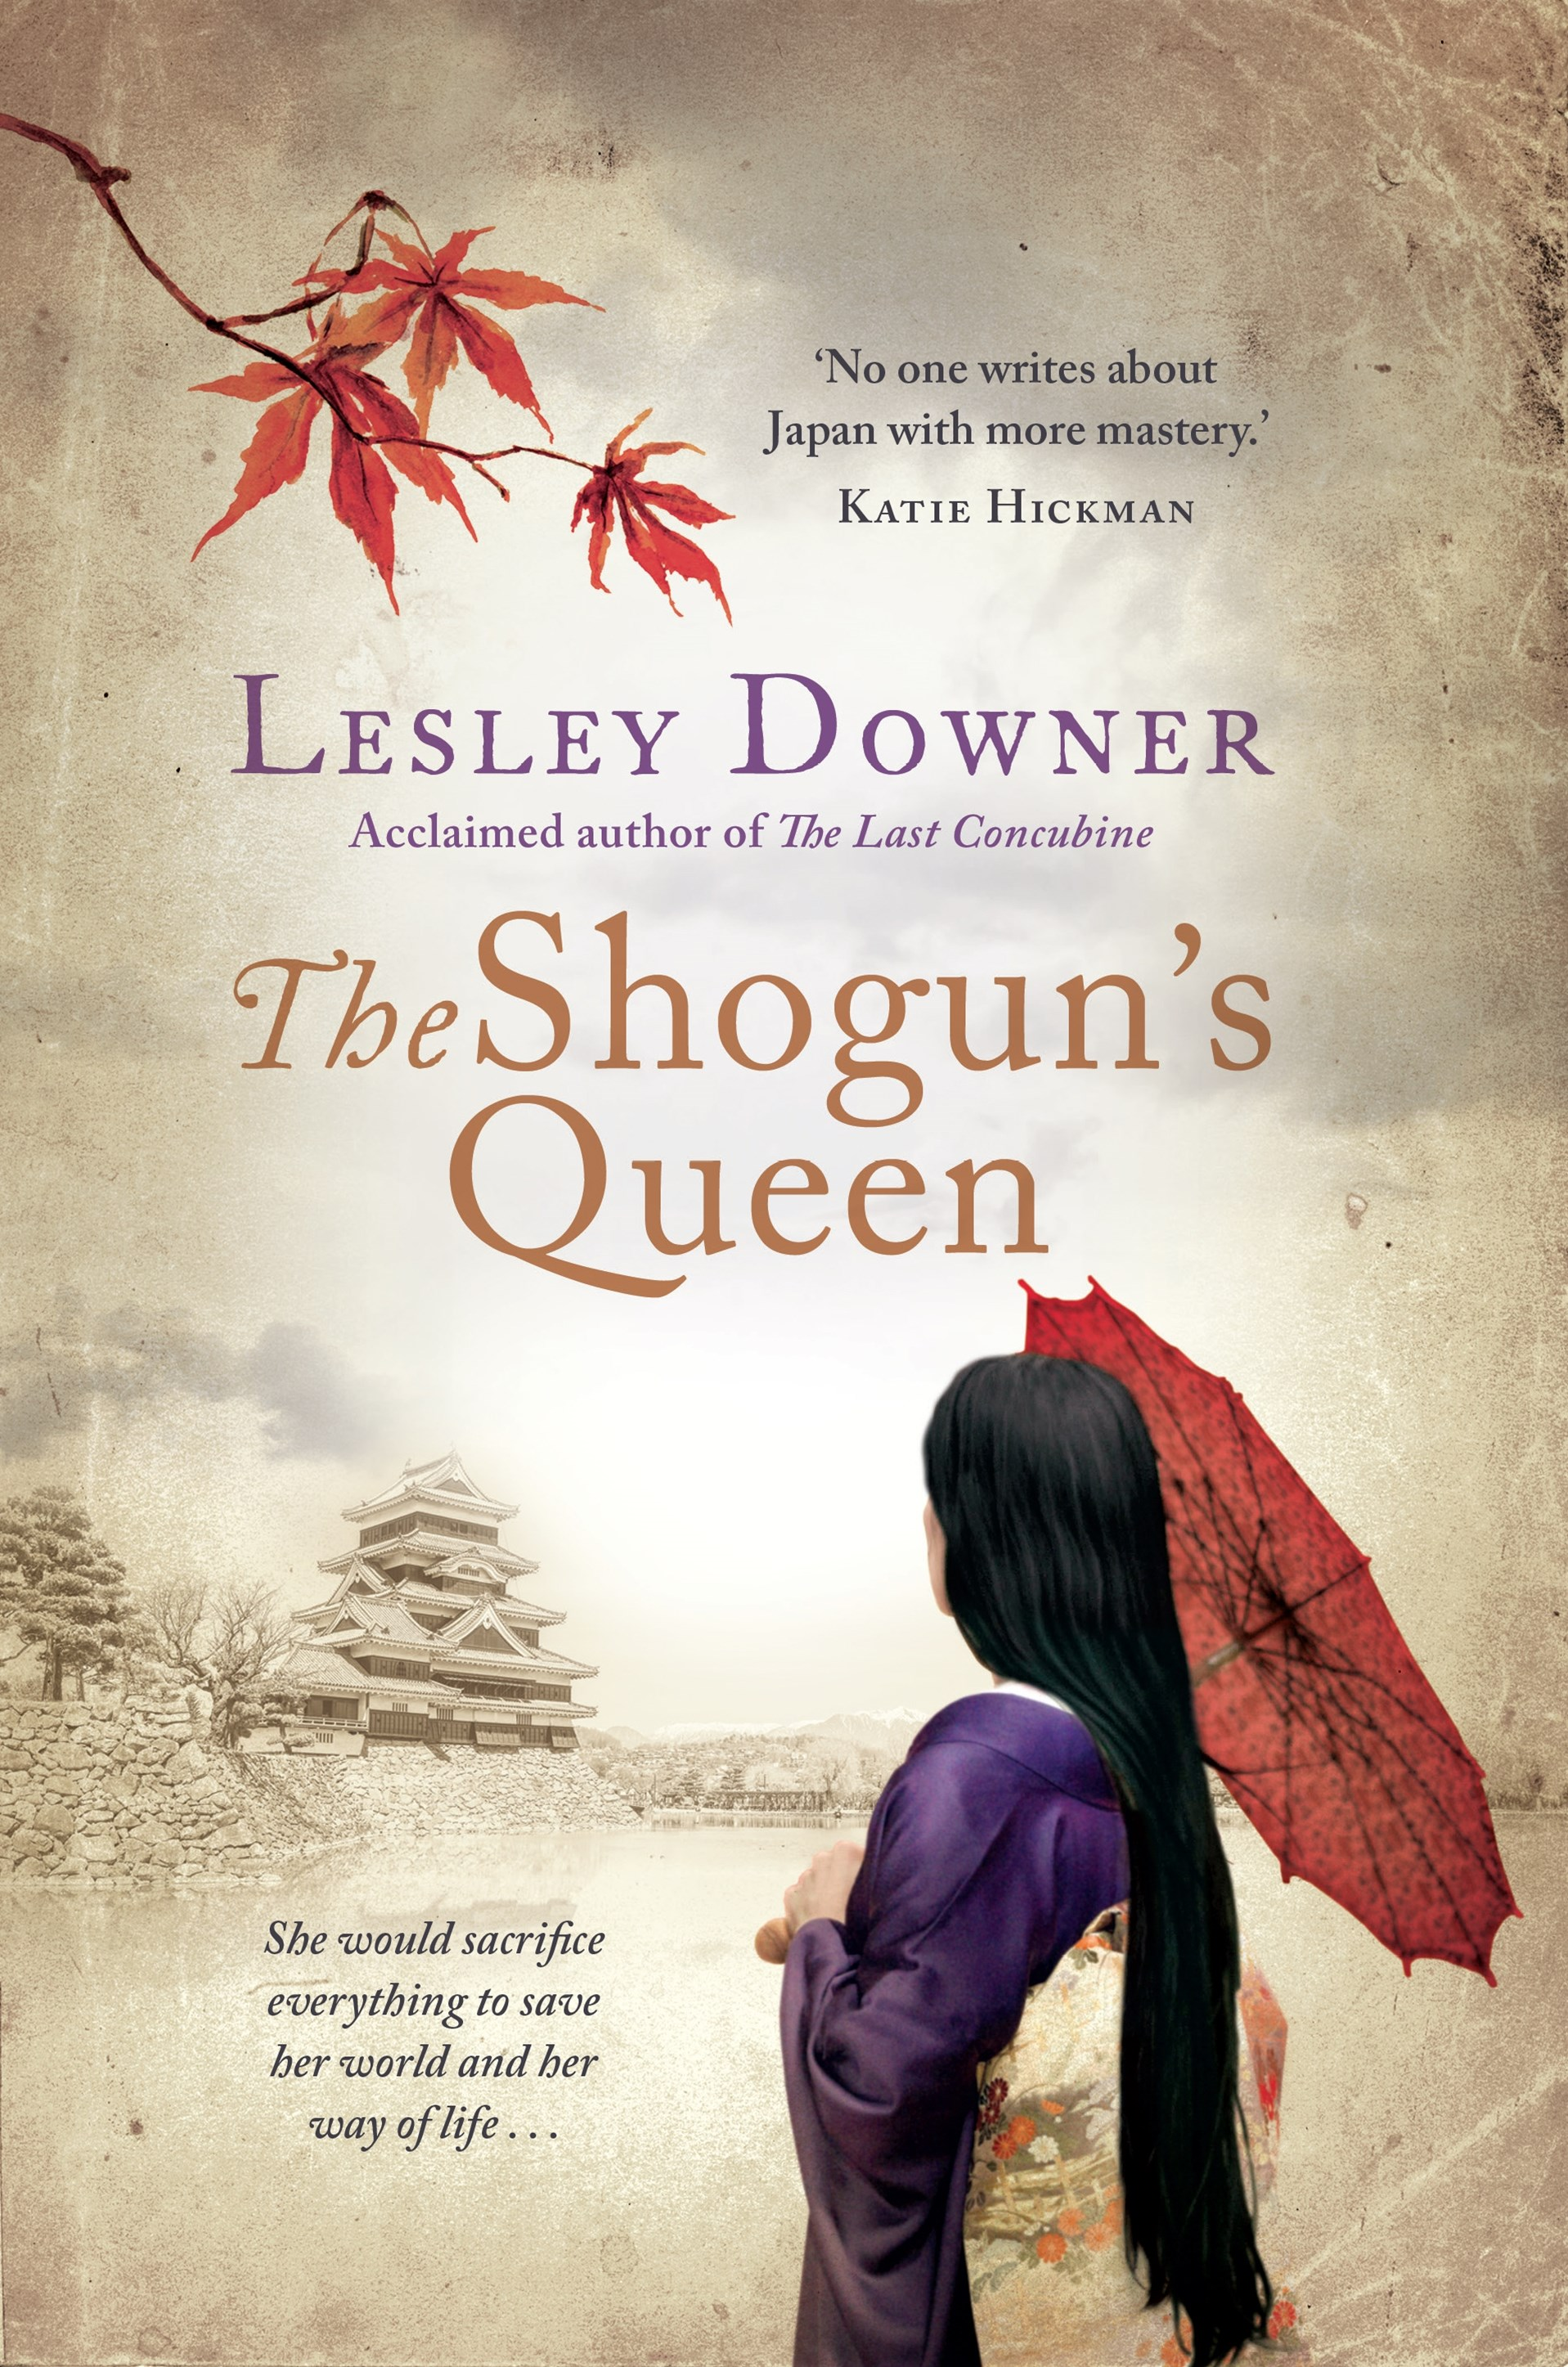 The Shogun's Queen: The Shogun Quartet, Book 1